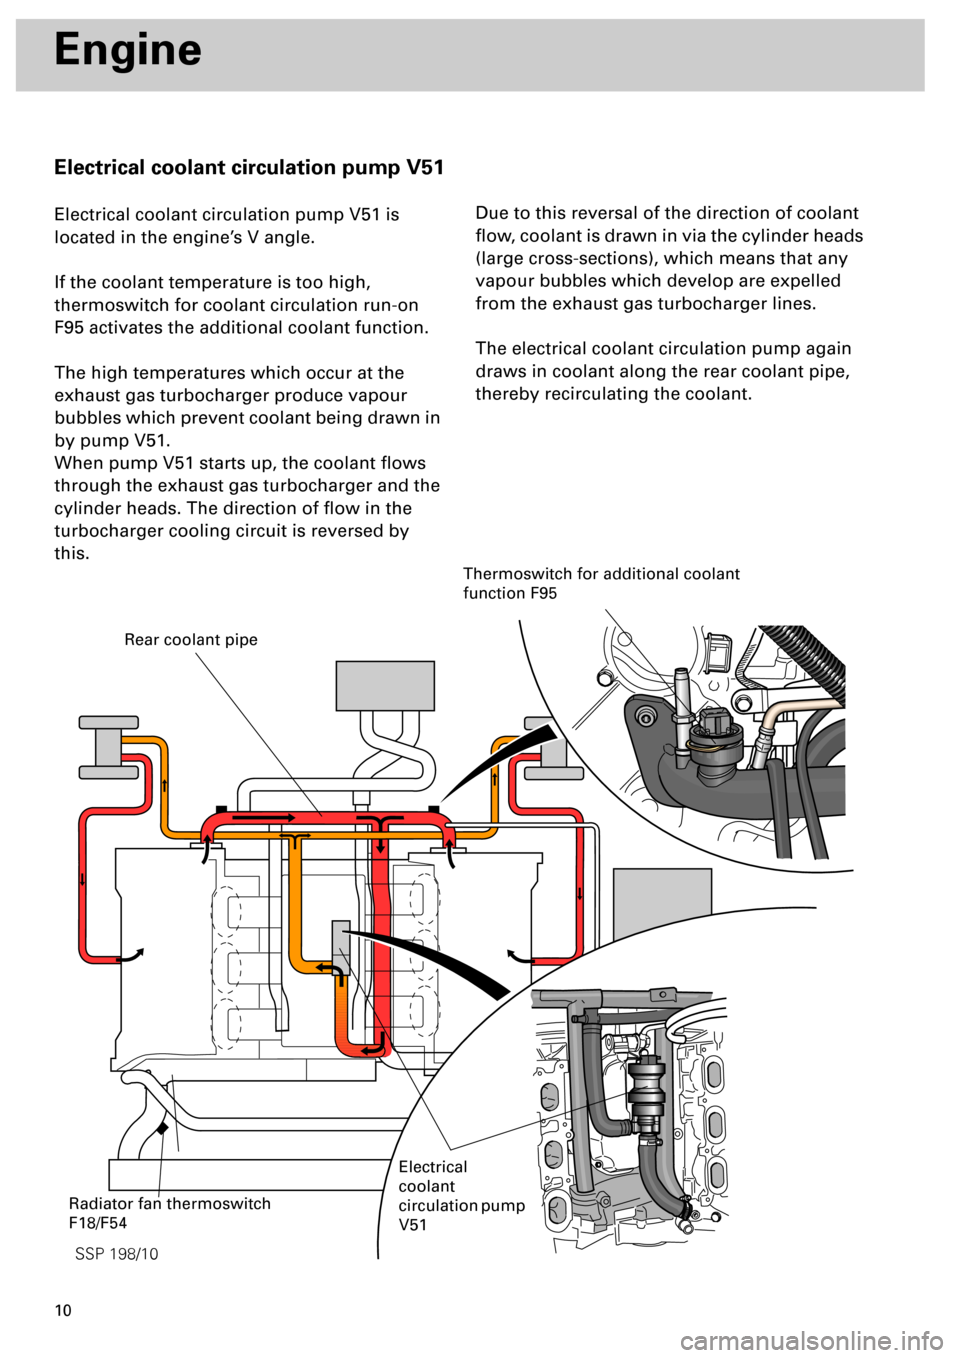 2000 Audi S4 Vacuum Diagram Schematic Diagrams Speaker Wiring B5 Enthusiast U2022 With 1 5 Badge